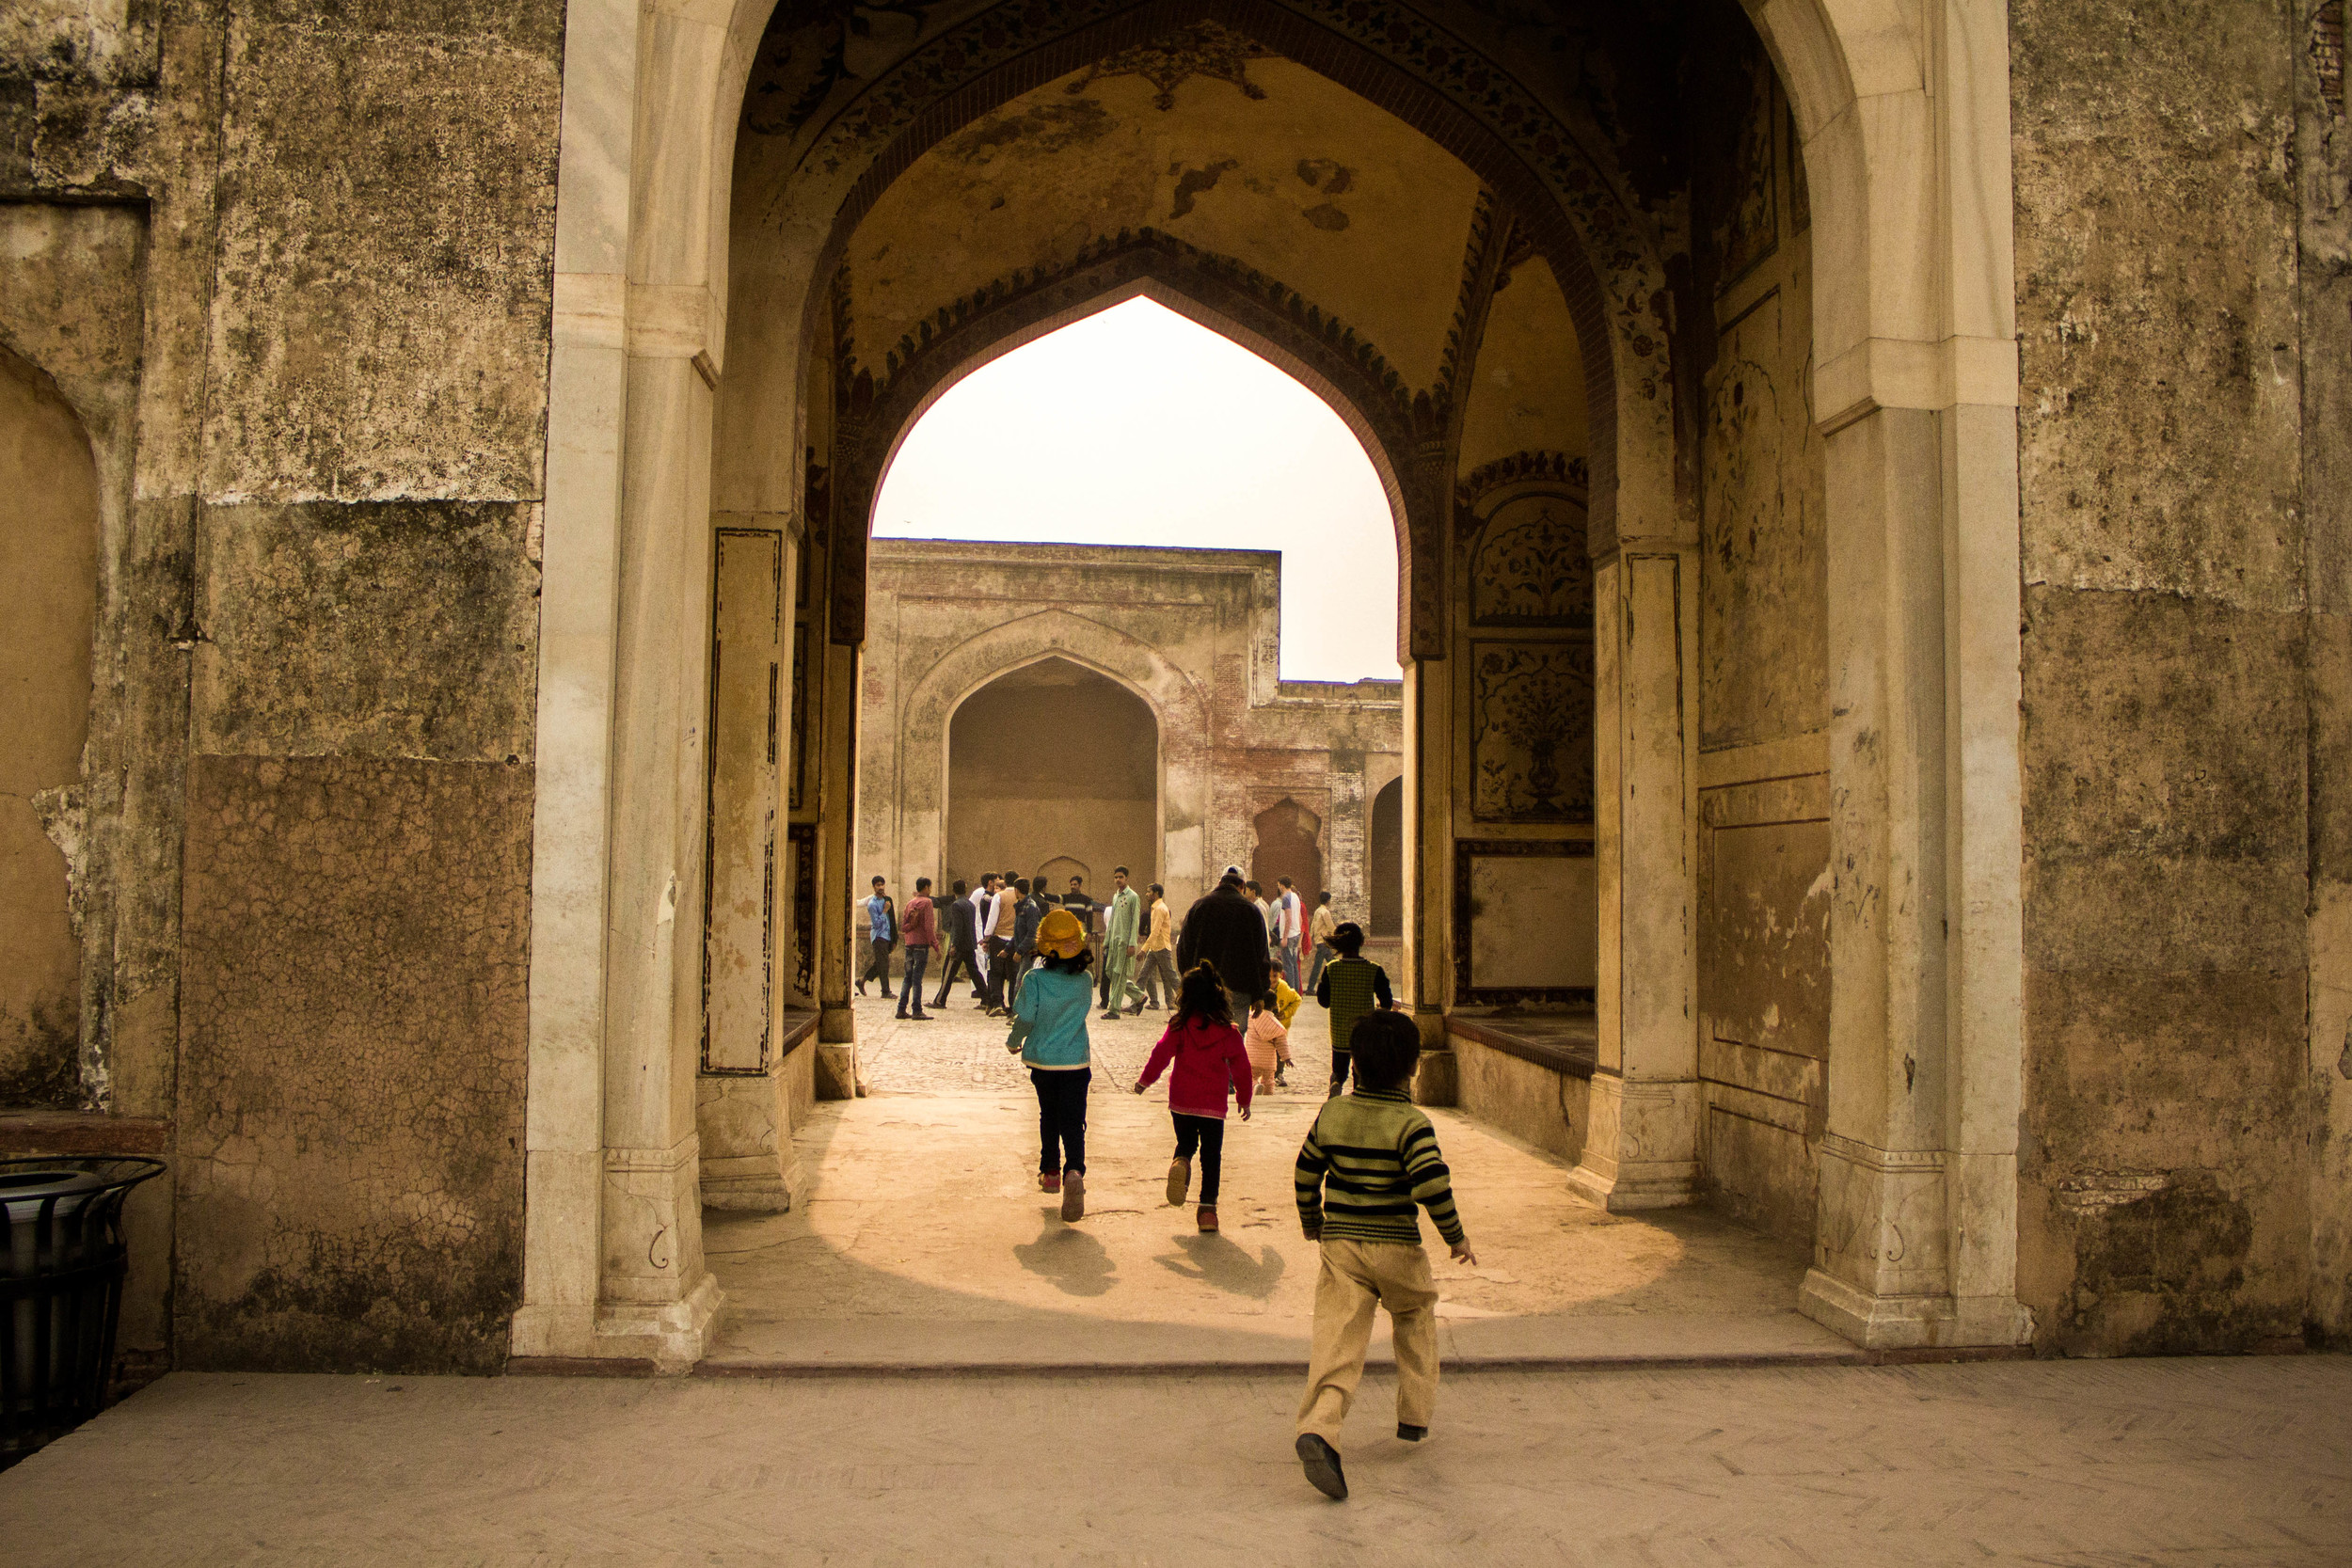 Children race through an archway into a courtyard in Lahore Fort